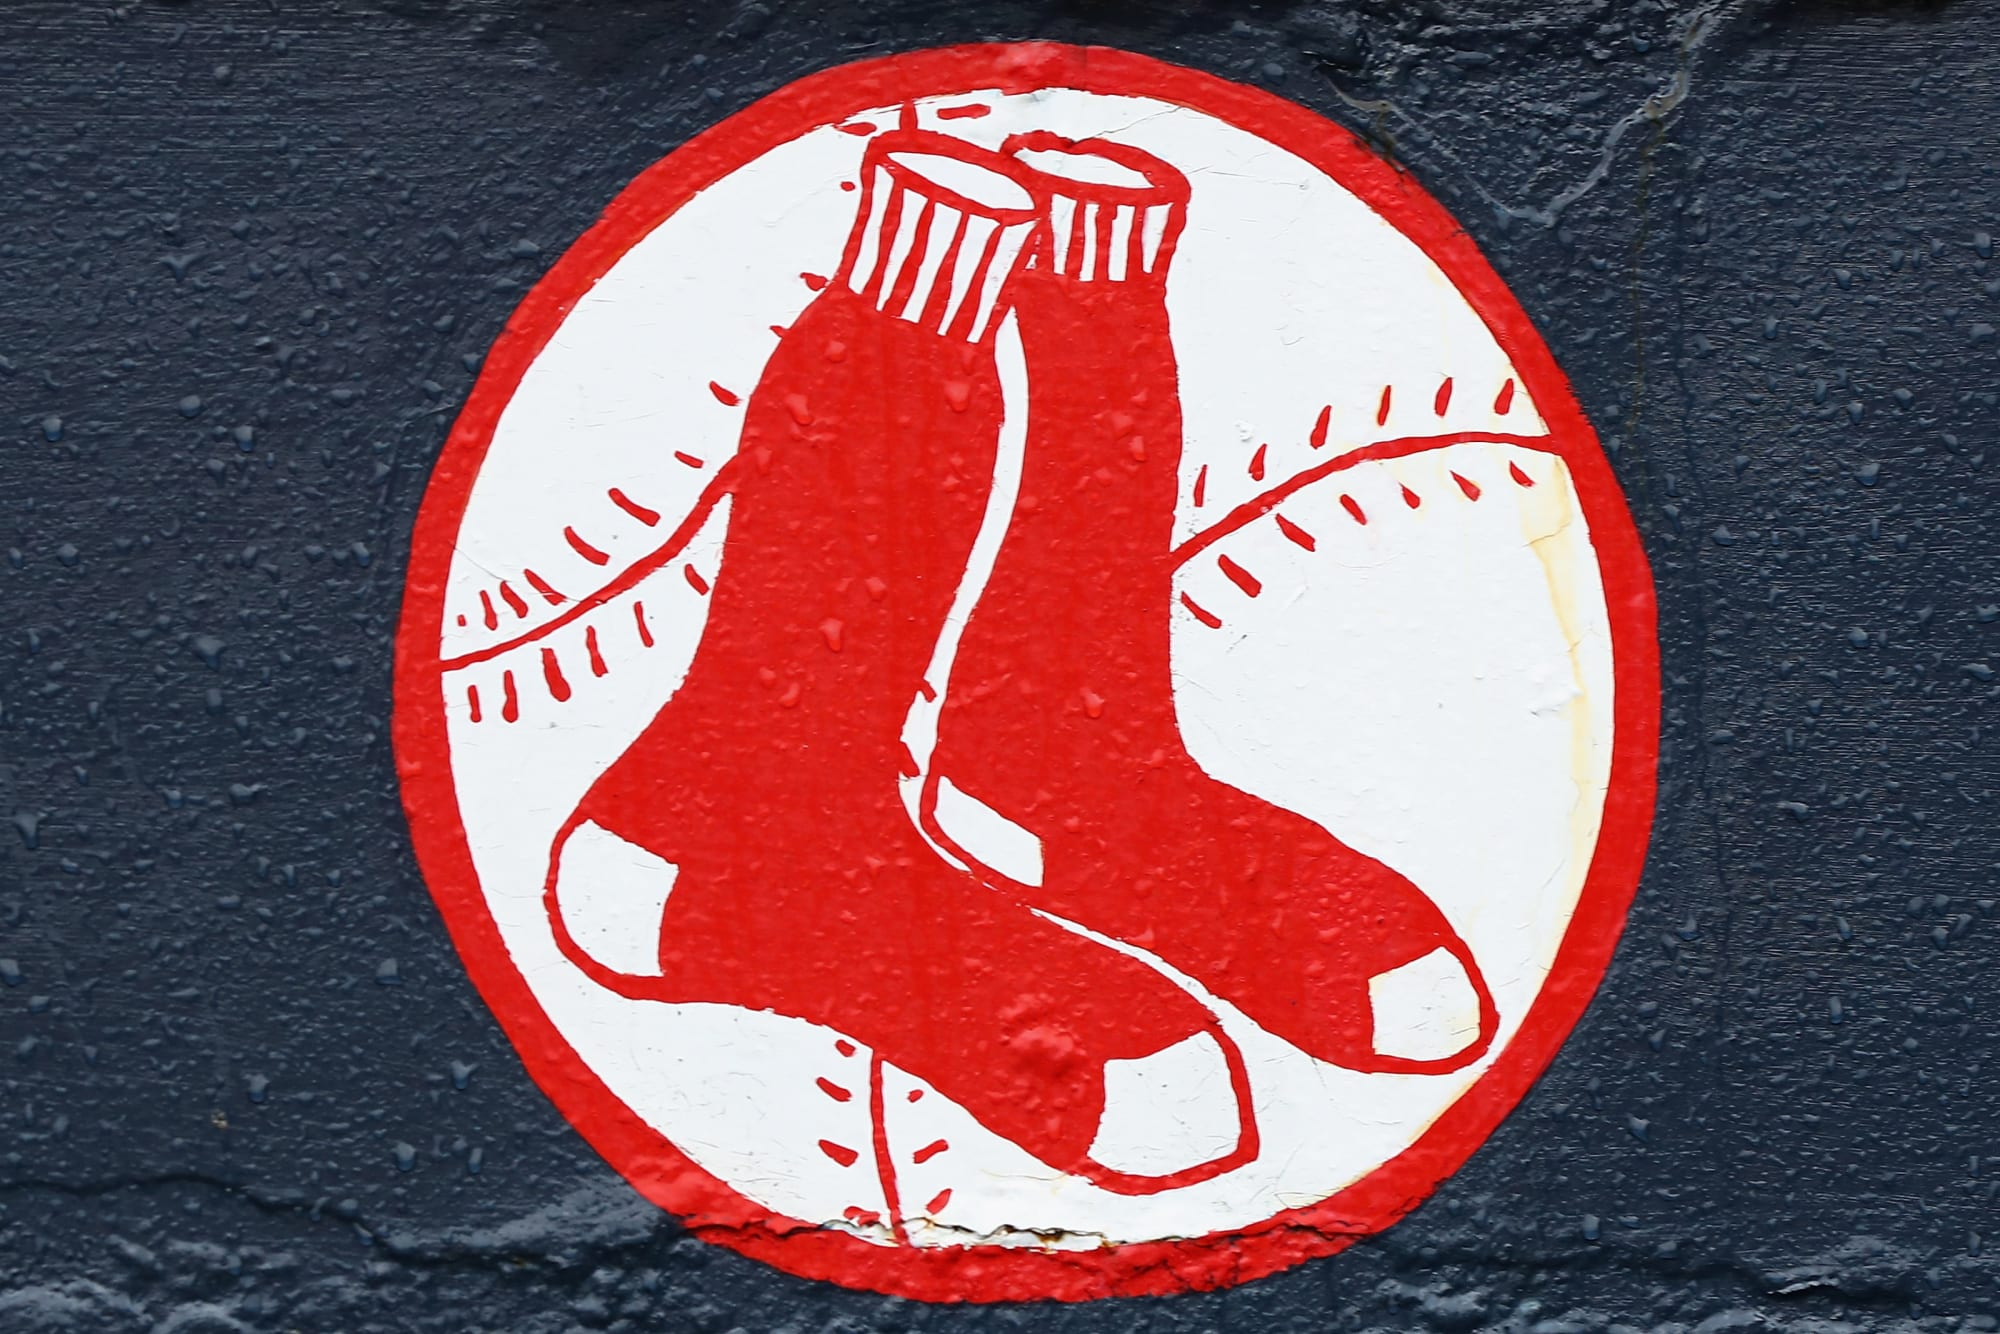 Boston Red Sox leftover minutia statistics from 2019 season